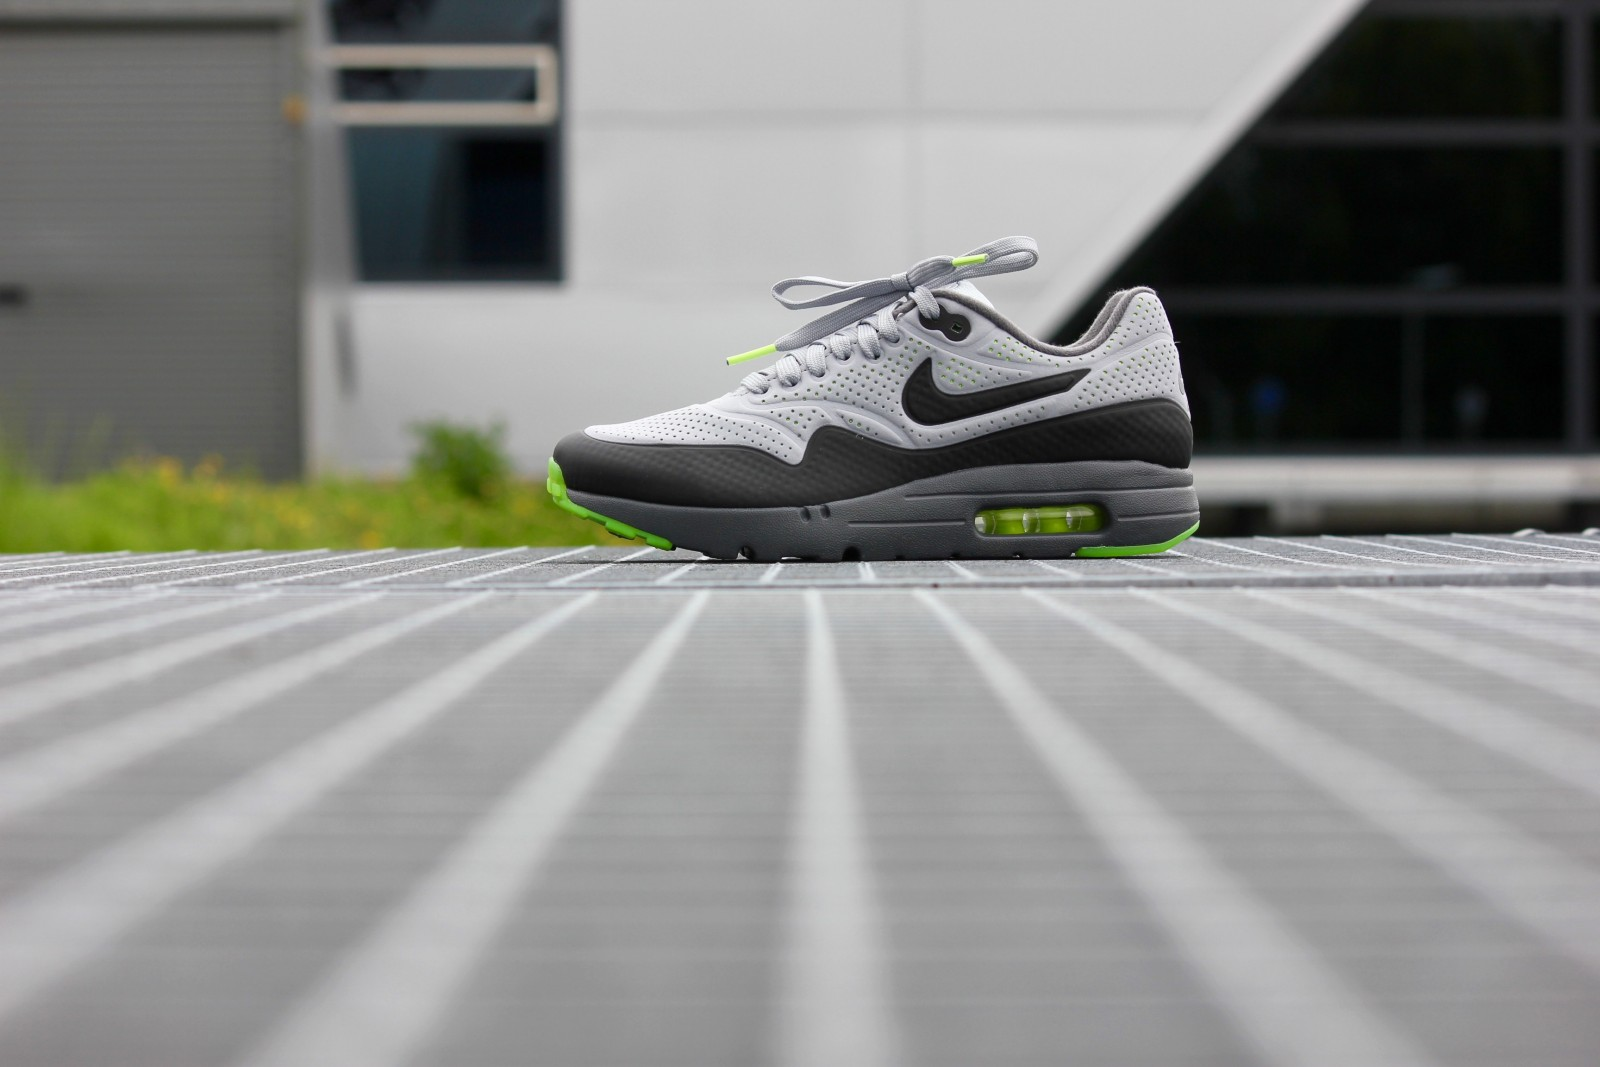 nike air max 1 neon ultra moire sneakers addict. Black Bedroom Furniture Sets. Home Design Ideas